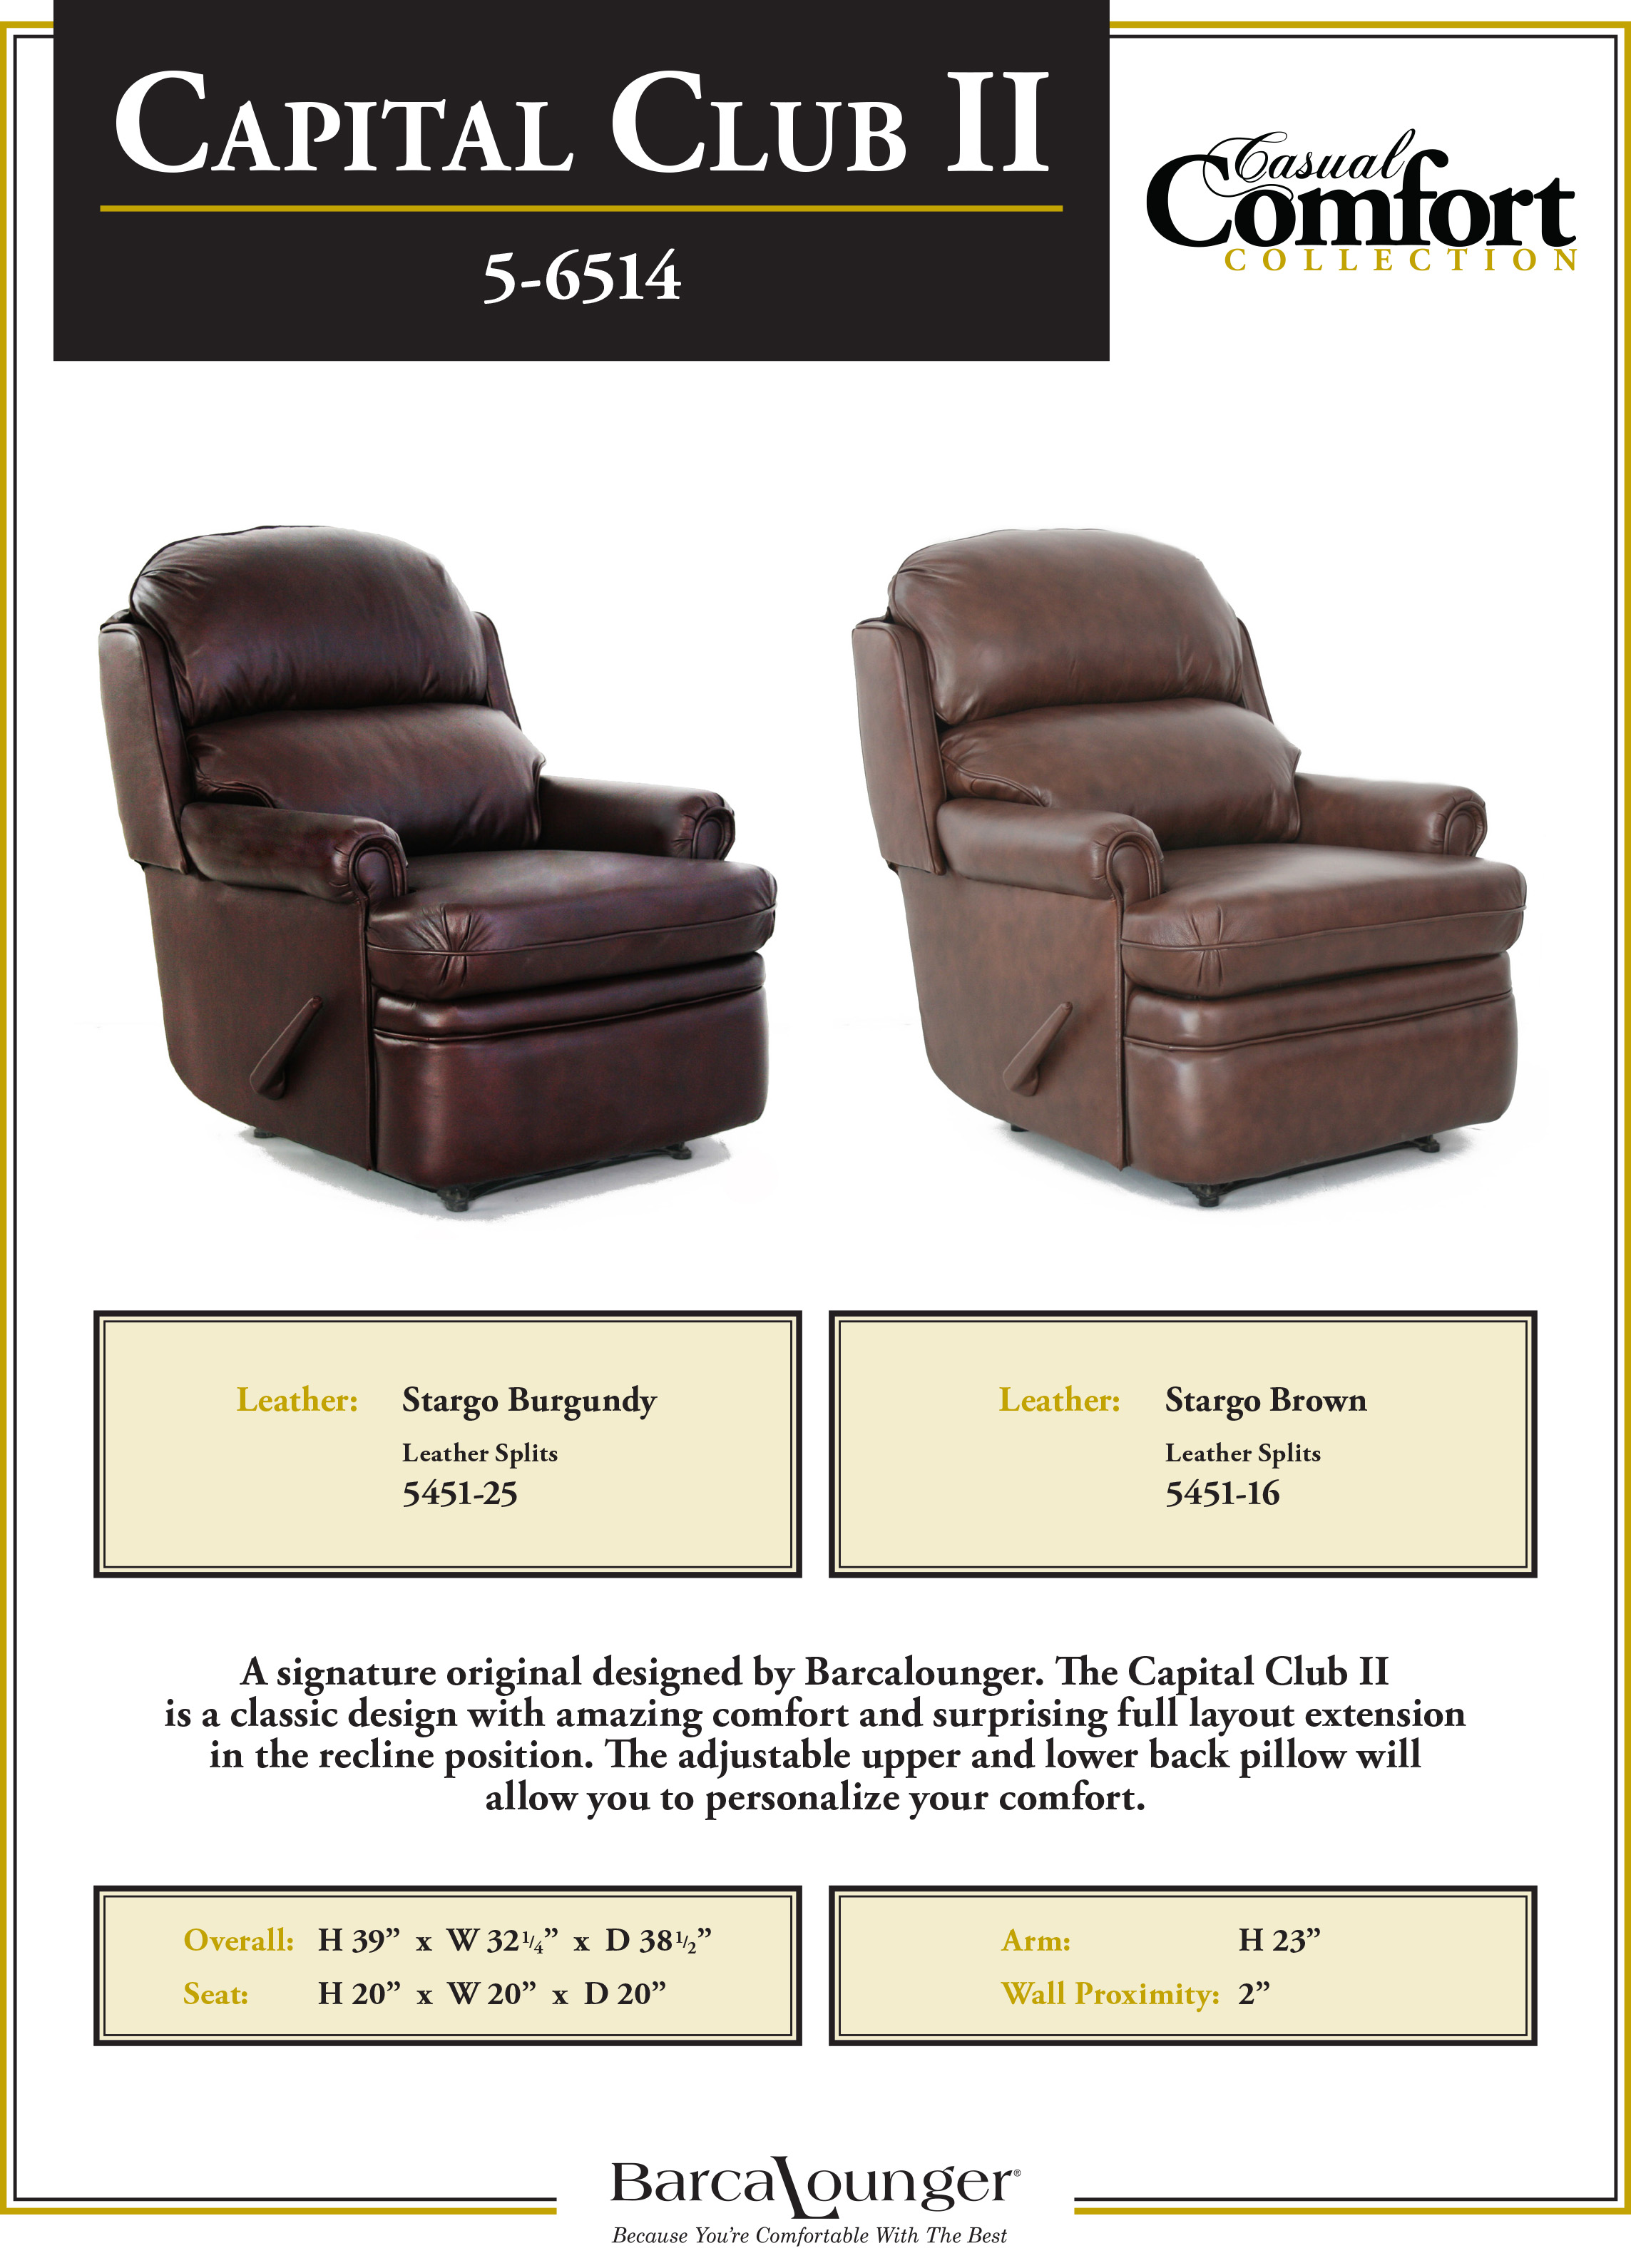 Barcalounger Capital Club II Recliner Chair Leather Dimensions